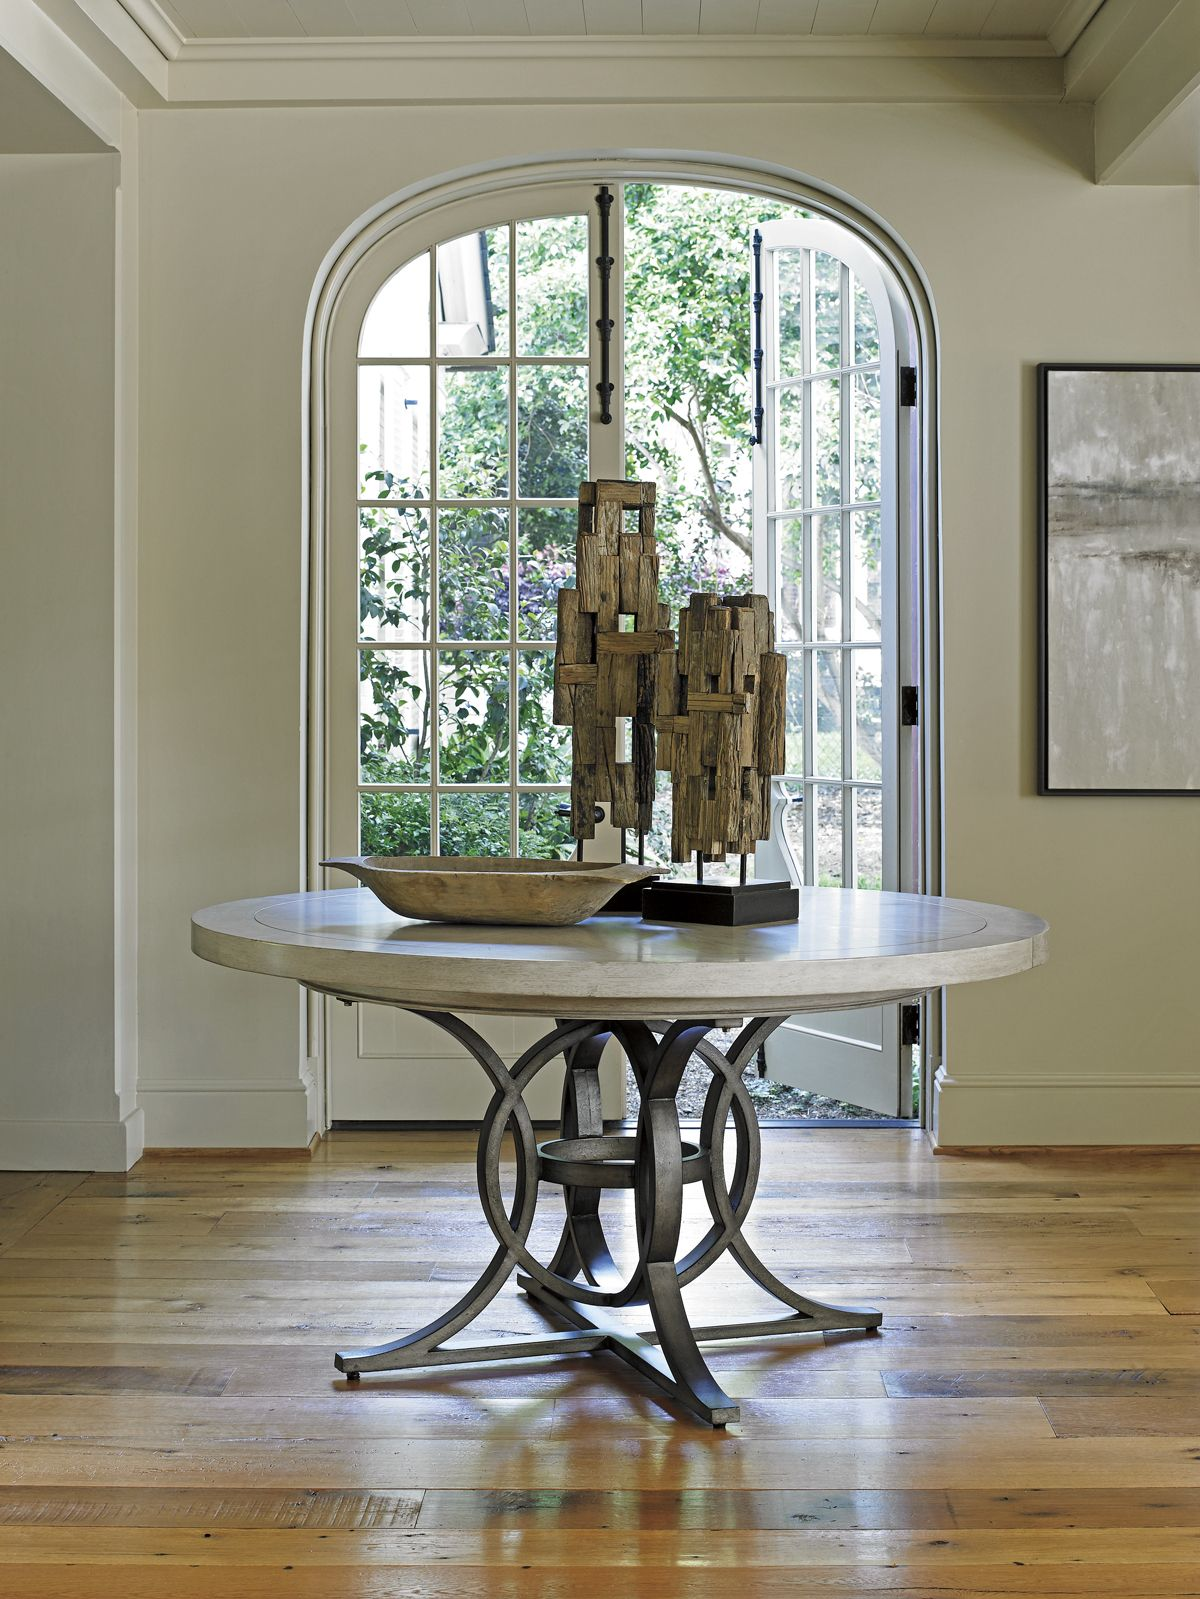 Oyster Bay Calerton Round Dining Table Round Foyer Table Entryway Round Table Round Dining Table